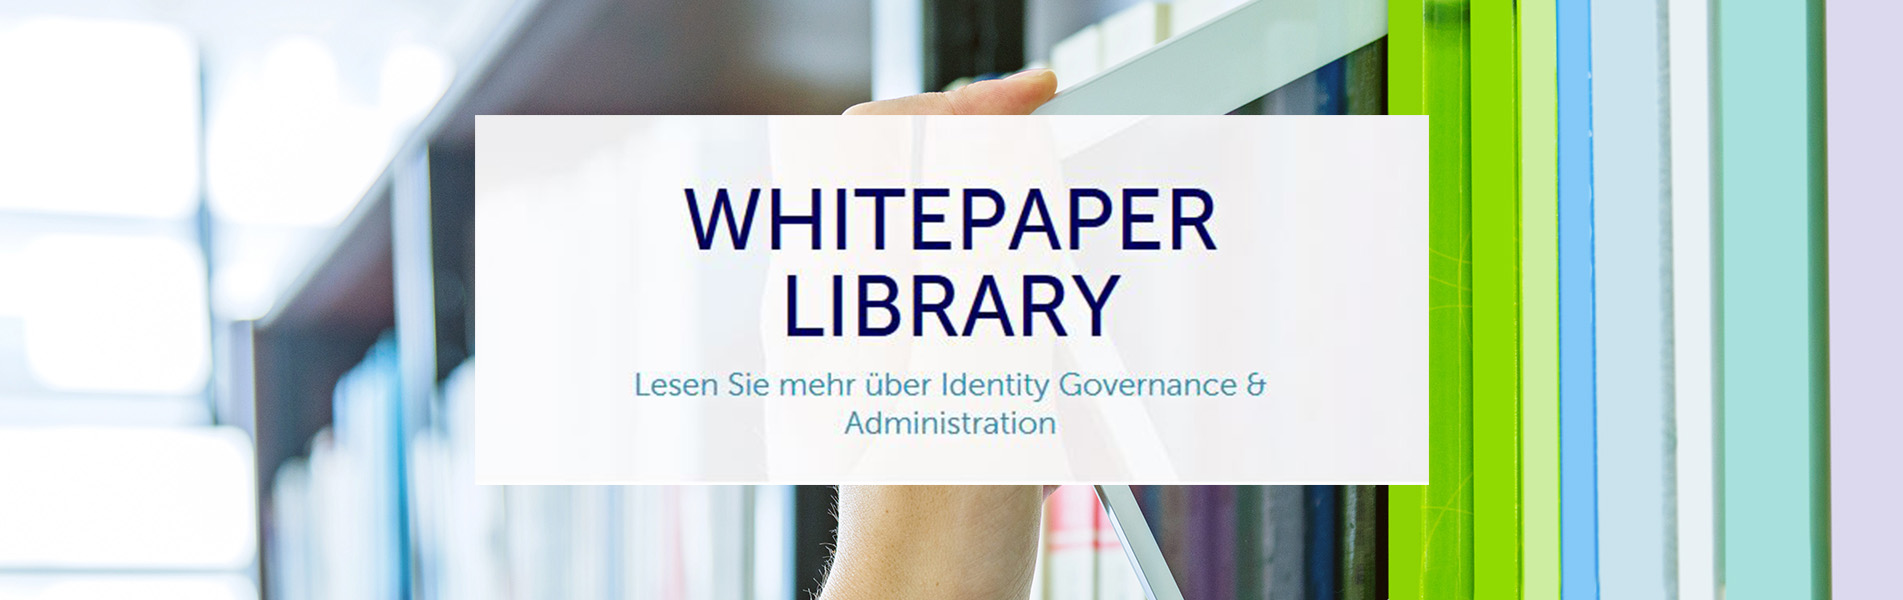 Whitepaper Library